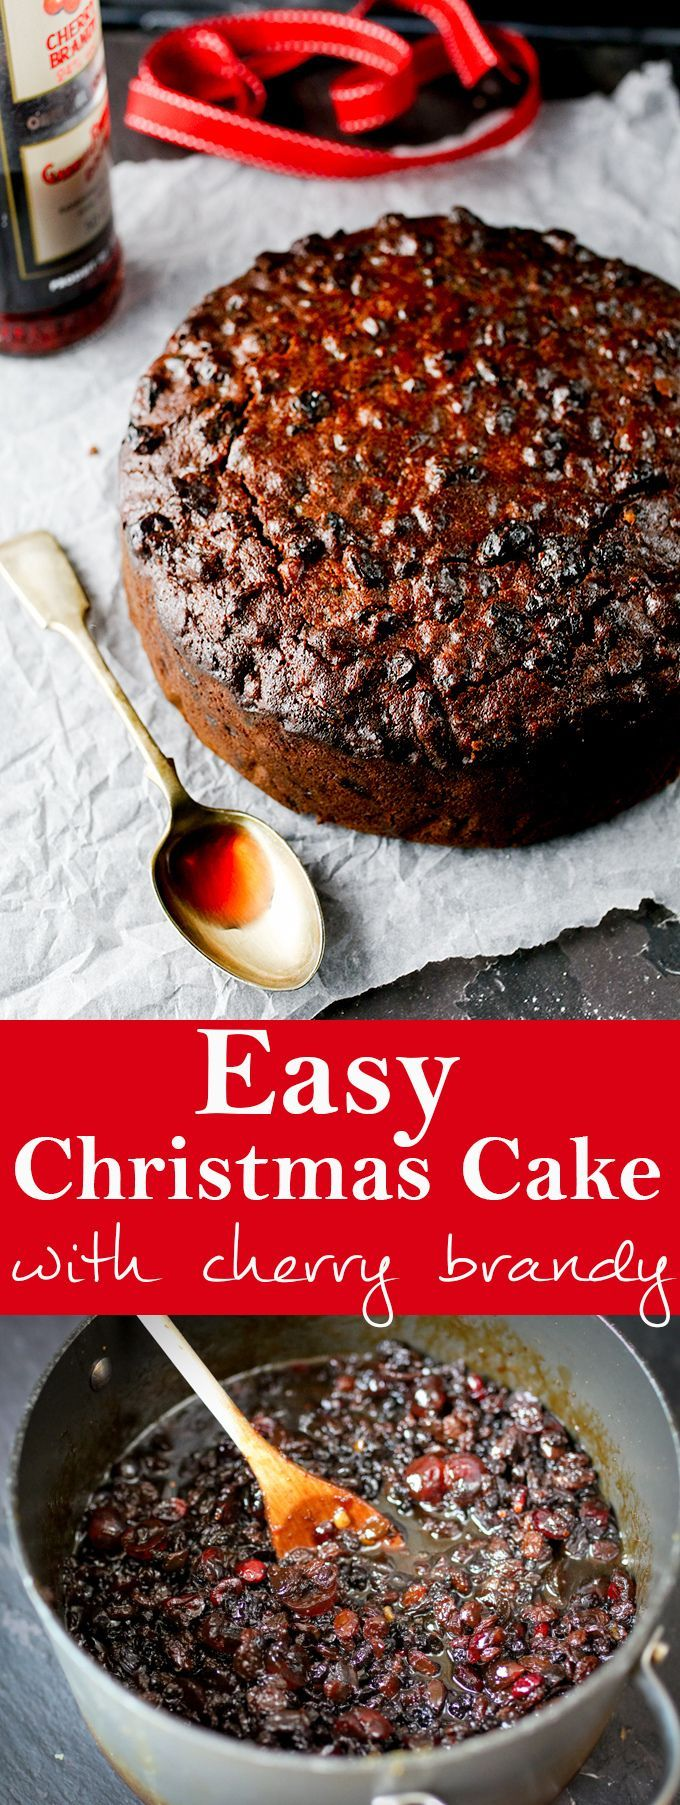 How to make christmas cake - November Is The Time To Make Your Christmas Cake